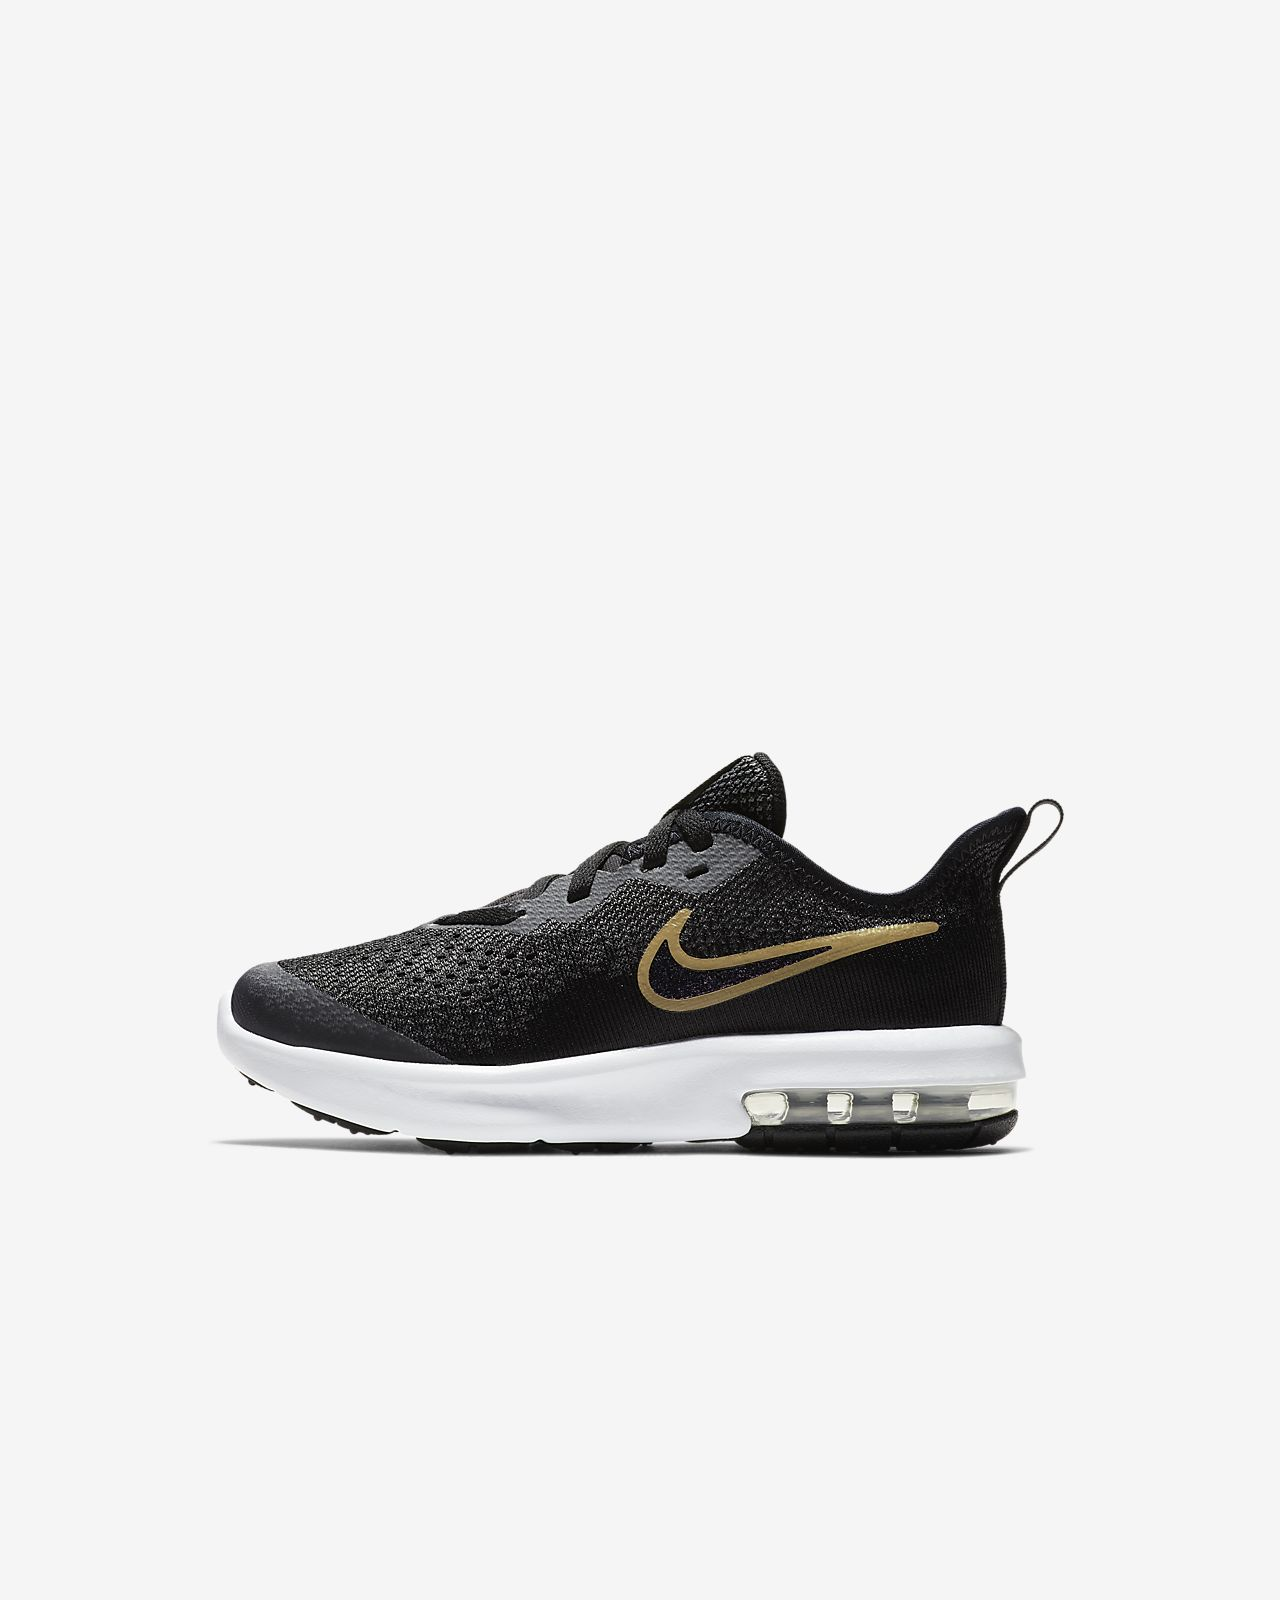 8f0fc6e0f6a Nike Air Max Sequent 4 Shine Younger Kids  Shoe. Nike.com AU